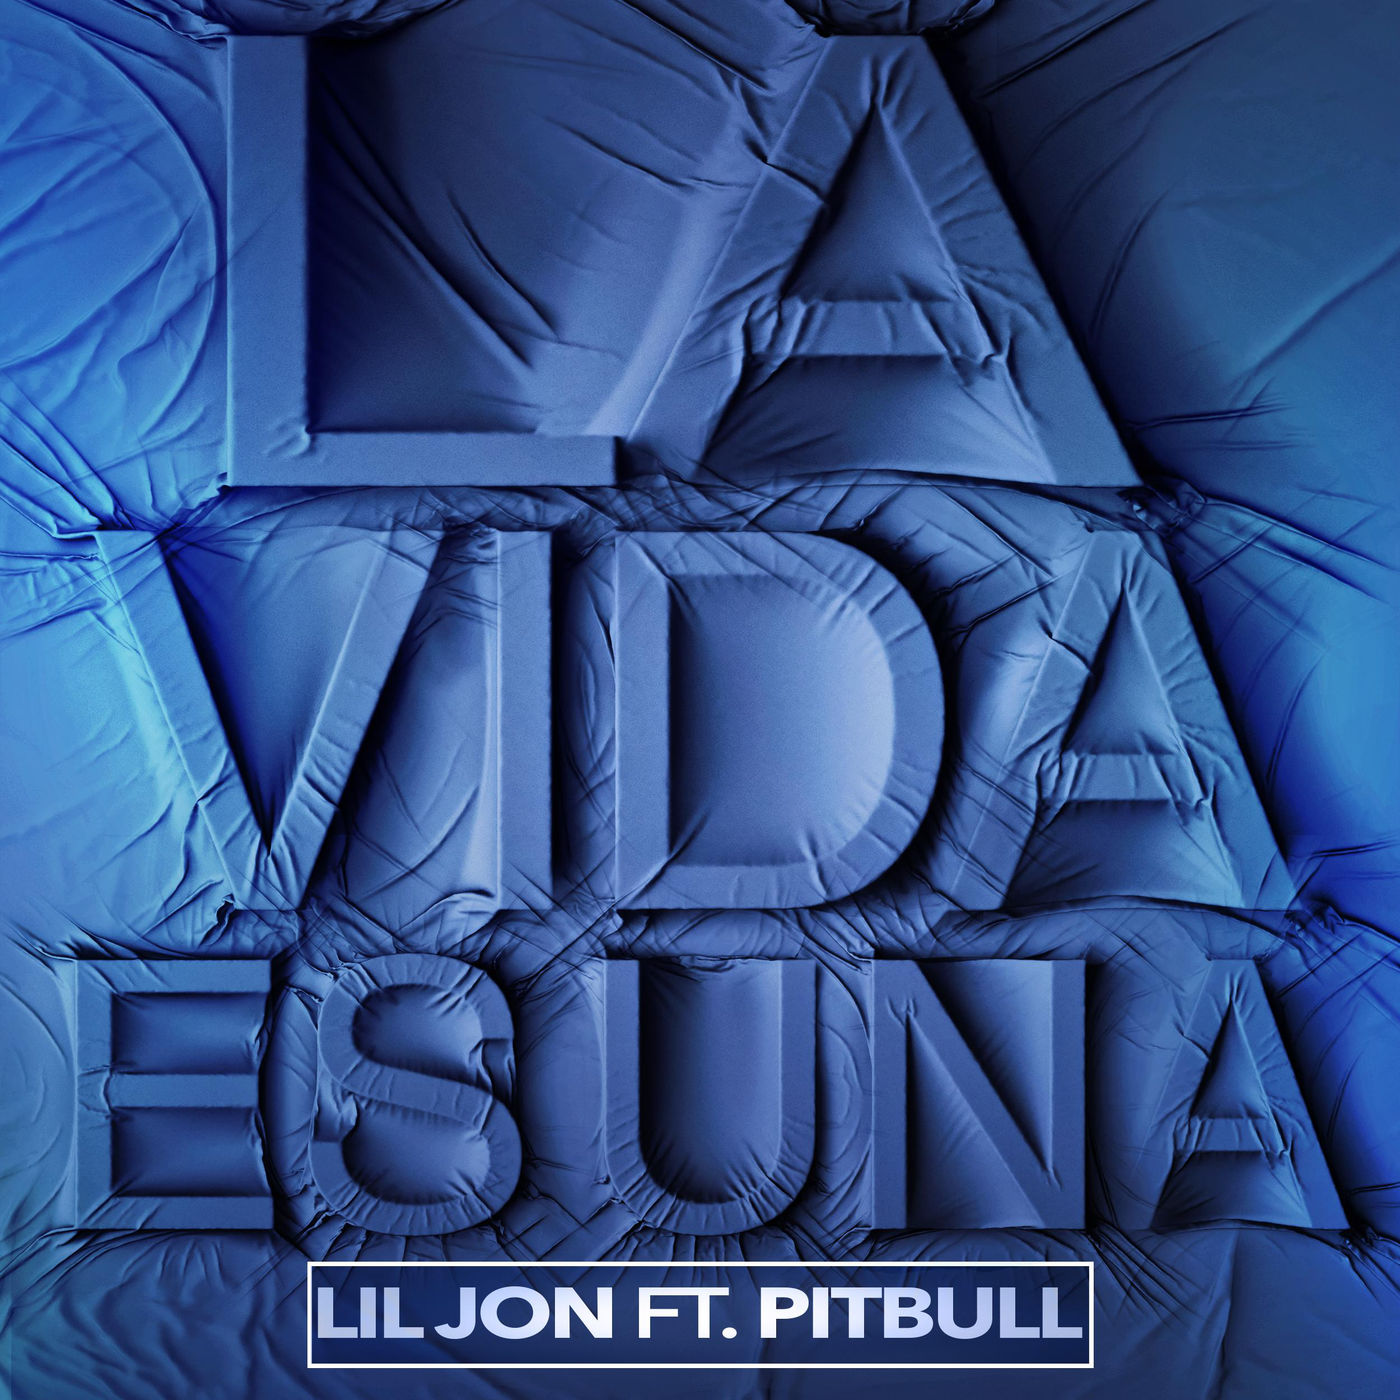 Lil Jon - La Vida Es Una (feat. Pitbull) - Single